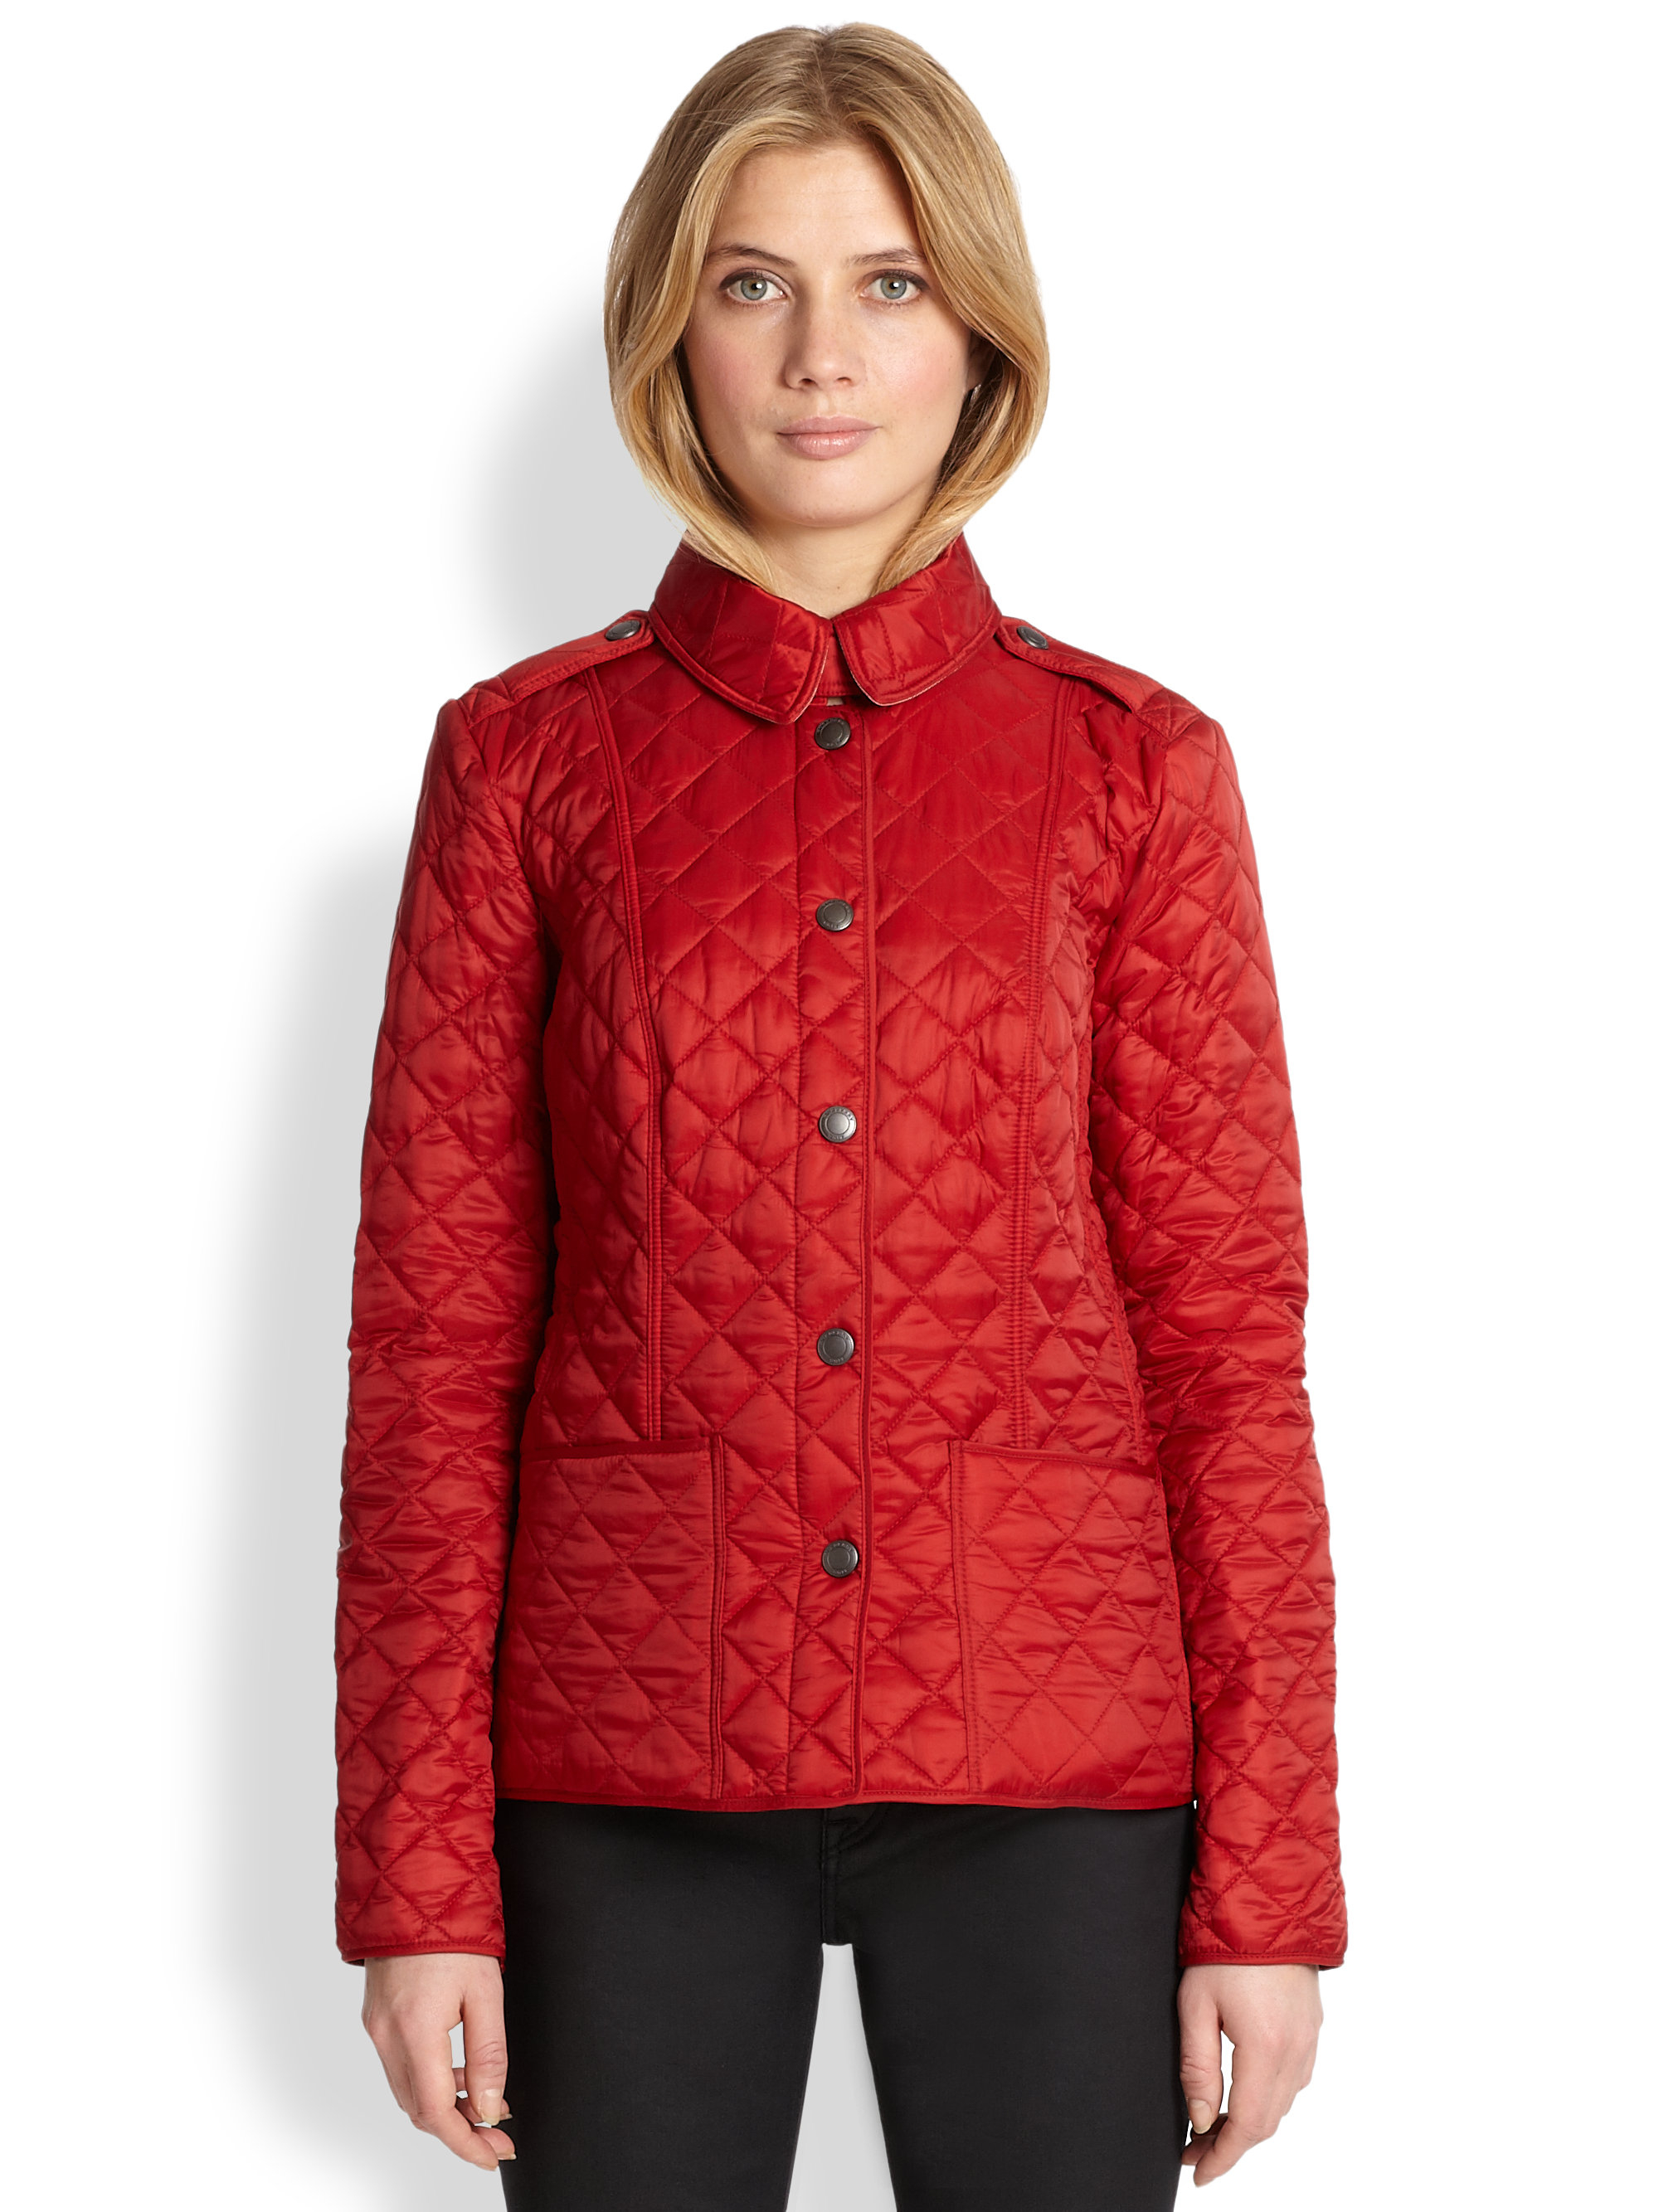 Lyst - Burberry brit Kencott Quilted Jacket in Red : red burberry quilted jacket - Adamdwight.com